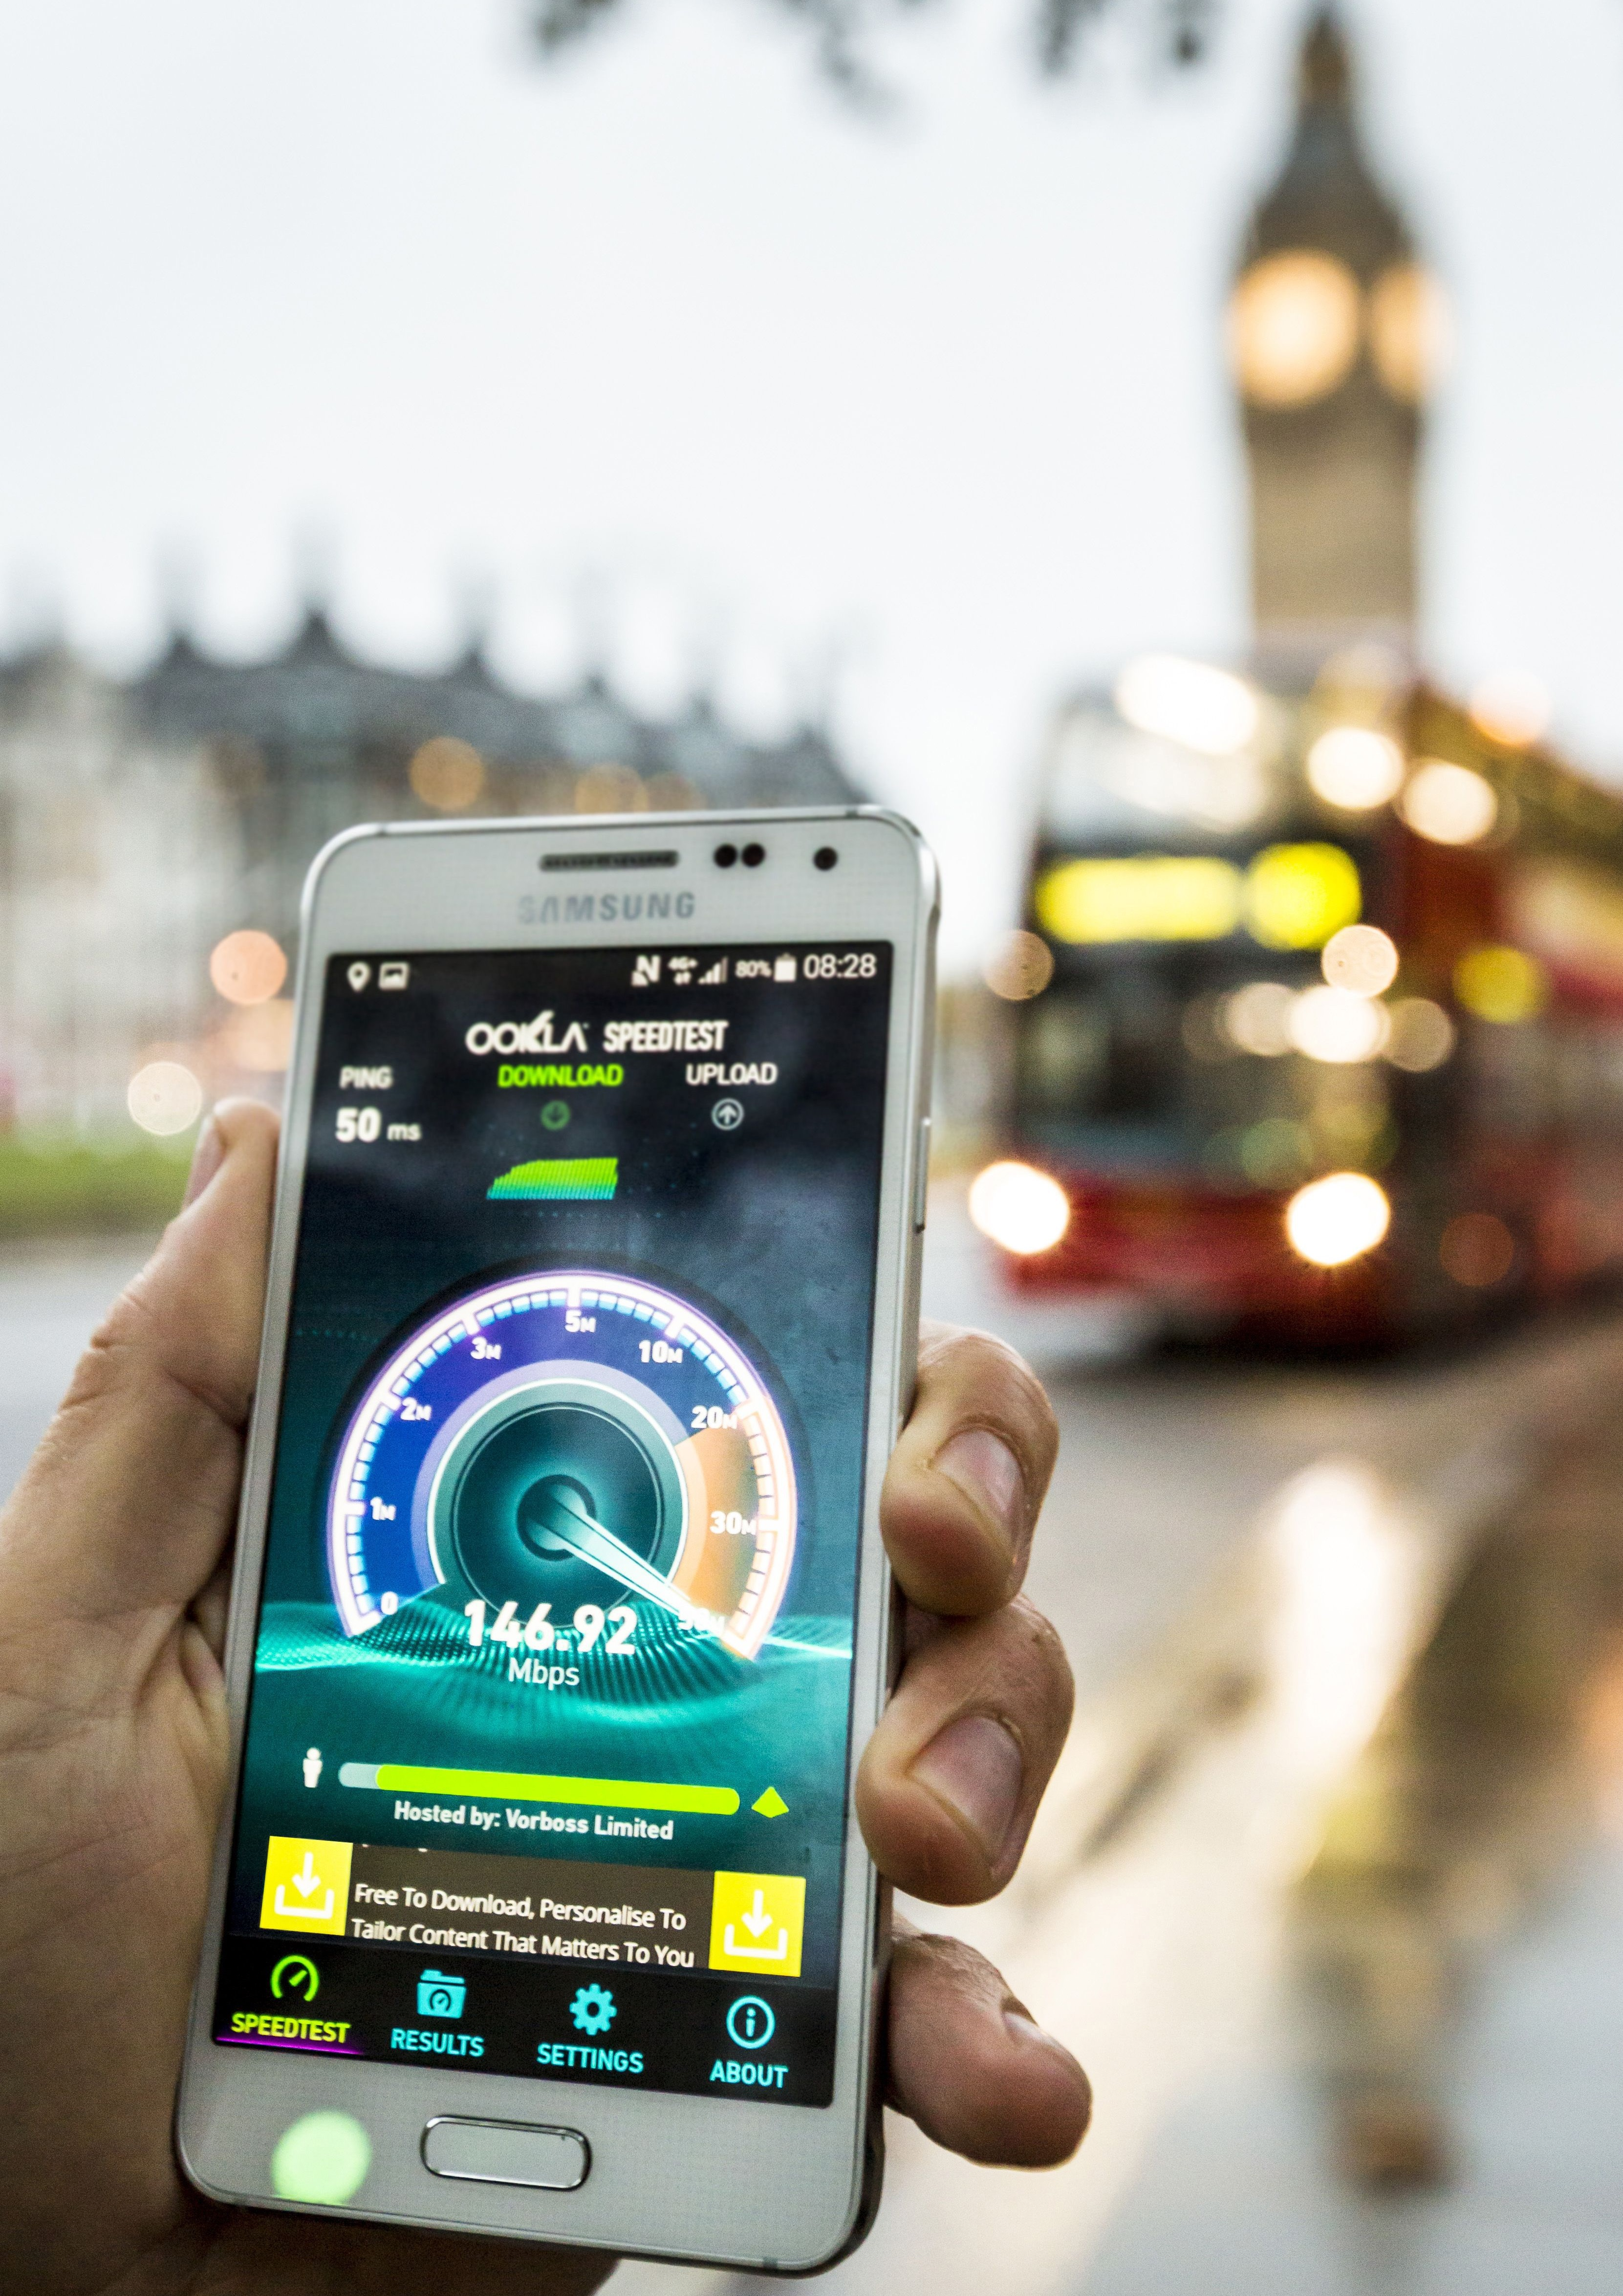 Ofcom Plans Auction To Power Up UK 4G